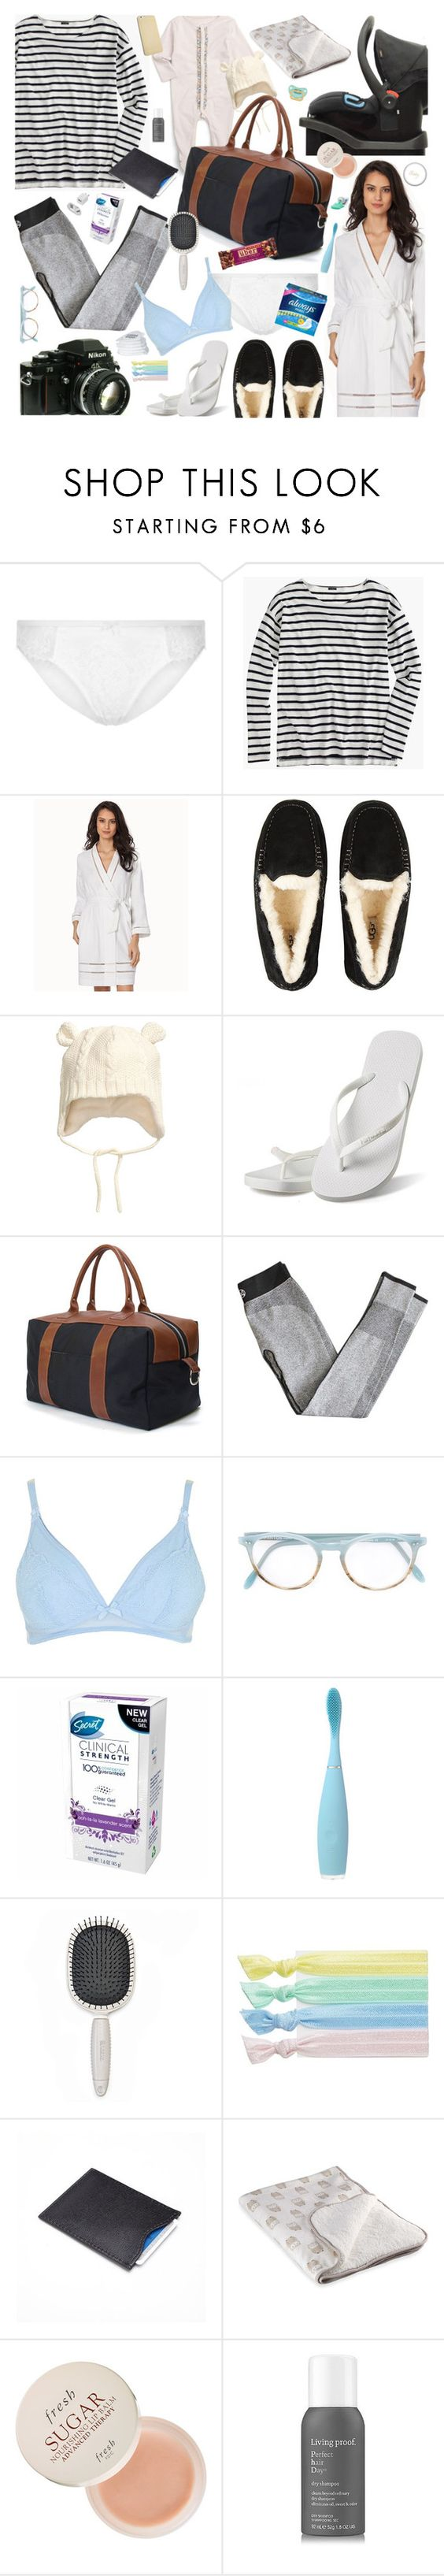 """""""Hospital Bag Packing!"""" by cutandpaste ❤ liked on Polyvore featuring Burberry, J.Crew, Oscar de la Renta, UGG Australia, Blue Claw Co., Topshop, Nikon, Pantos, FOREO and Earth Therapeutics"""